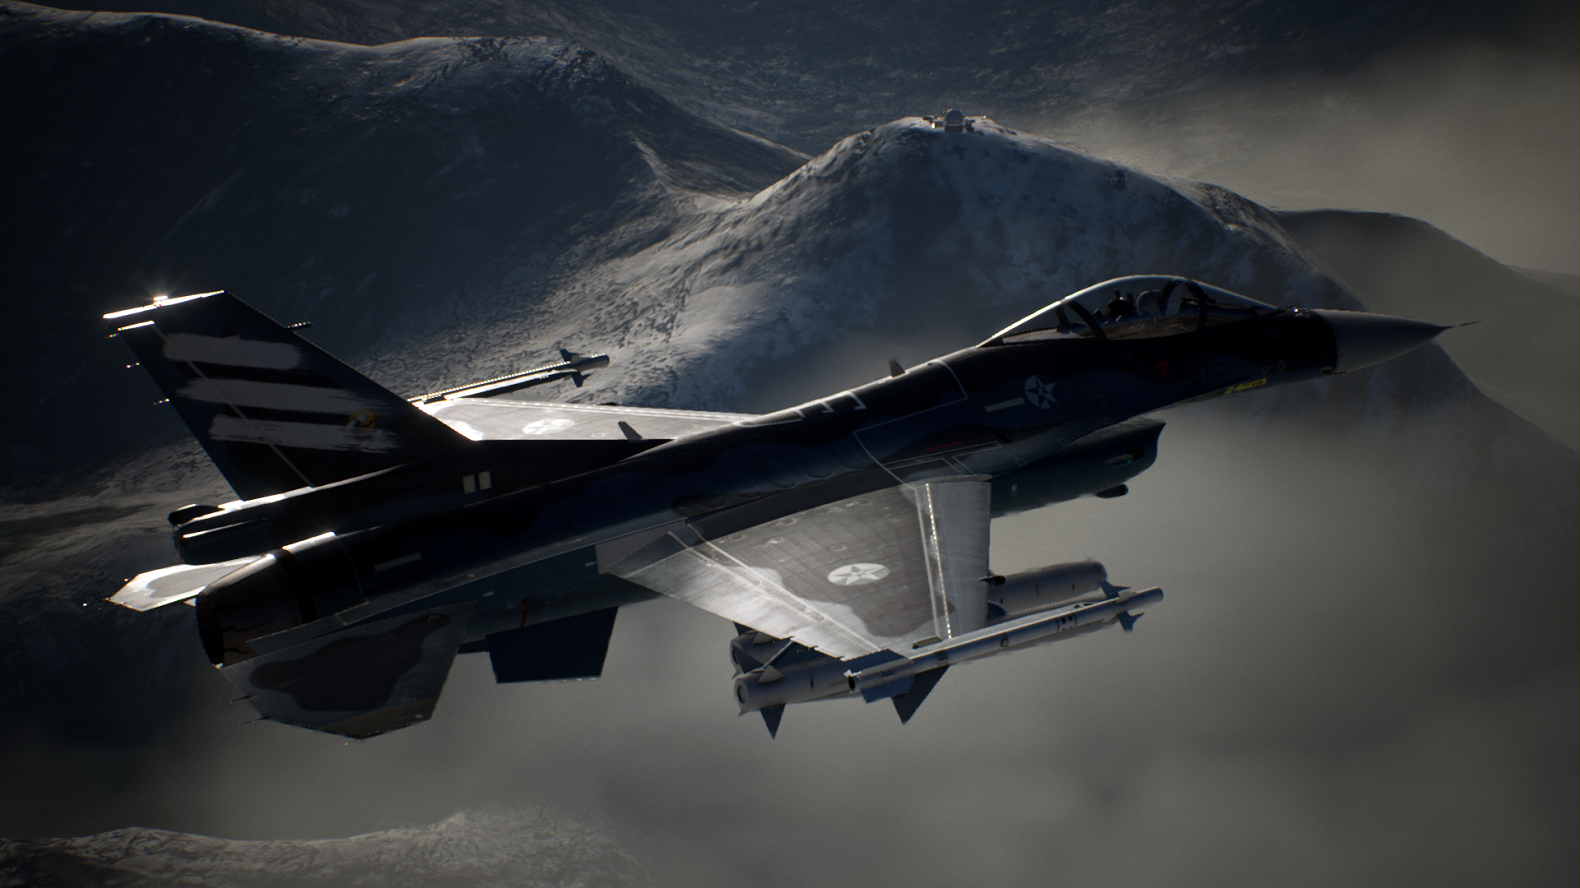 ae310e2848943fb26dab007be7ea2b4e.png - Ace Combat 7: Skies Unknown